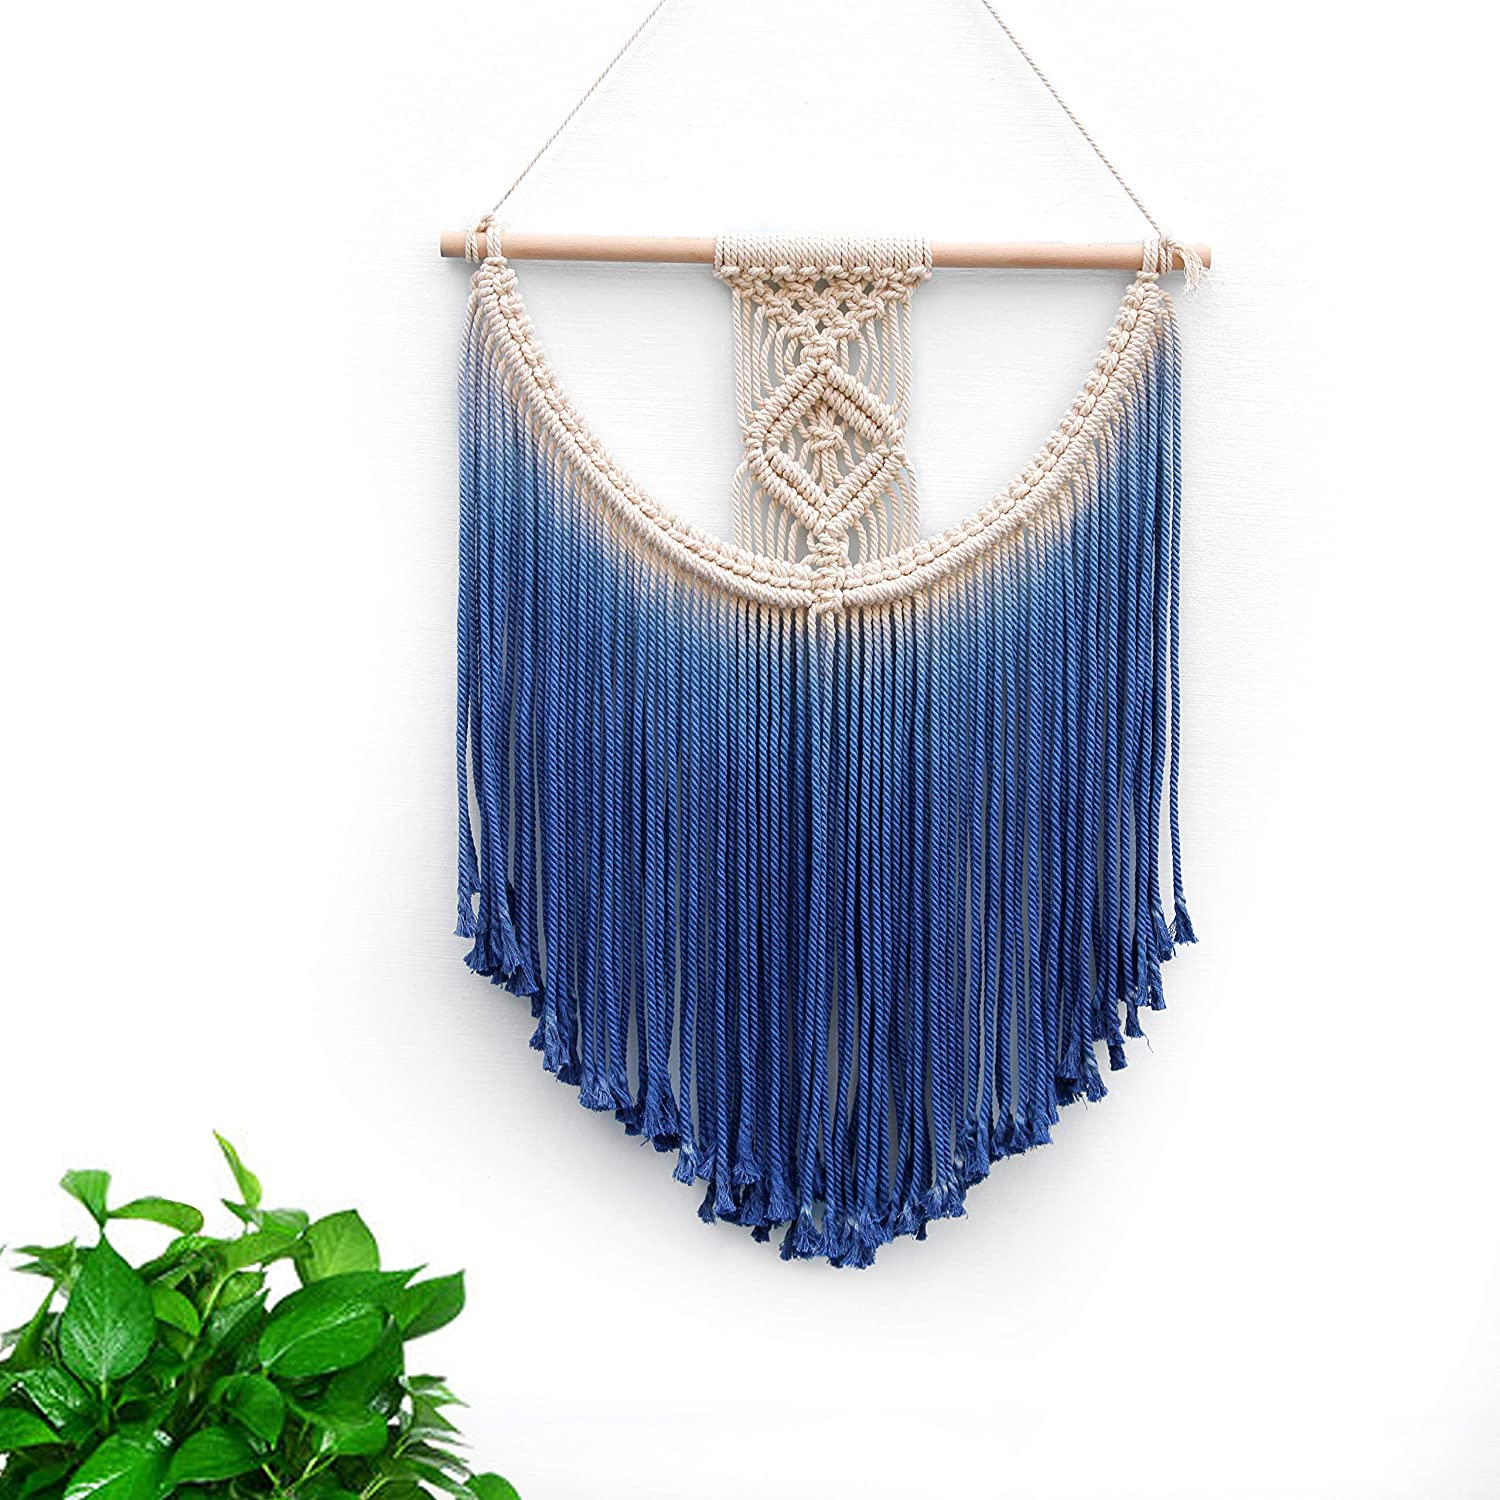 BlueMake Macrame Wall Hanging Tapestry Hand Woven Pendant Decoration House Ceremony Living Room Home Furnishing Accessories (Light Gray)